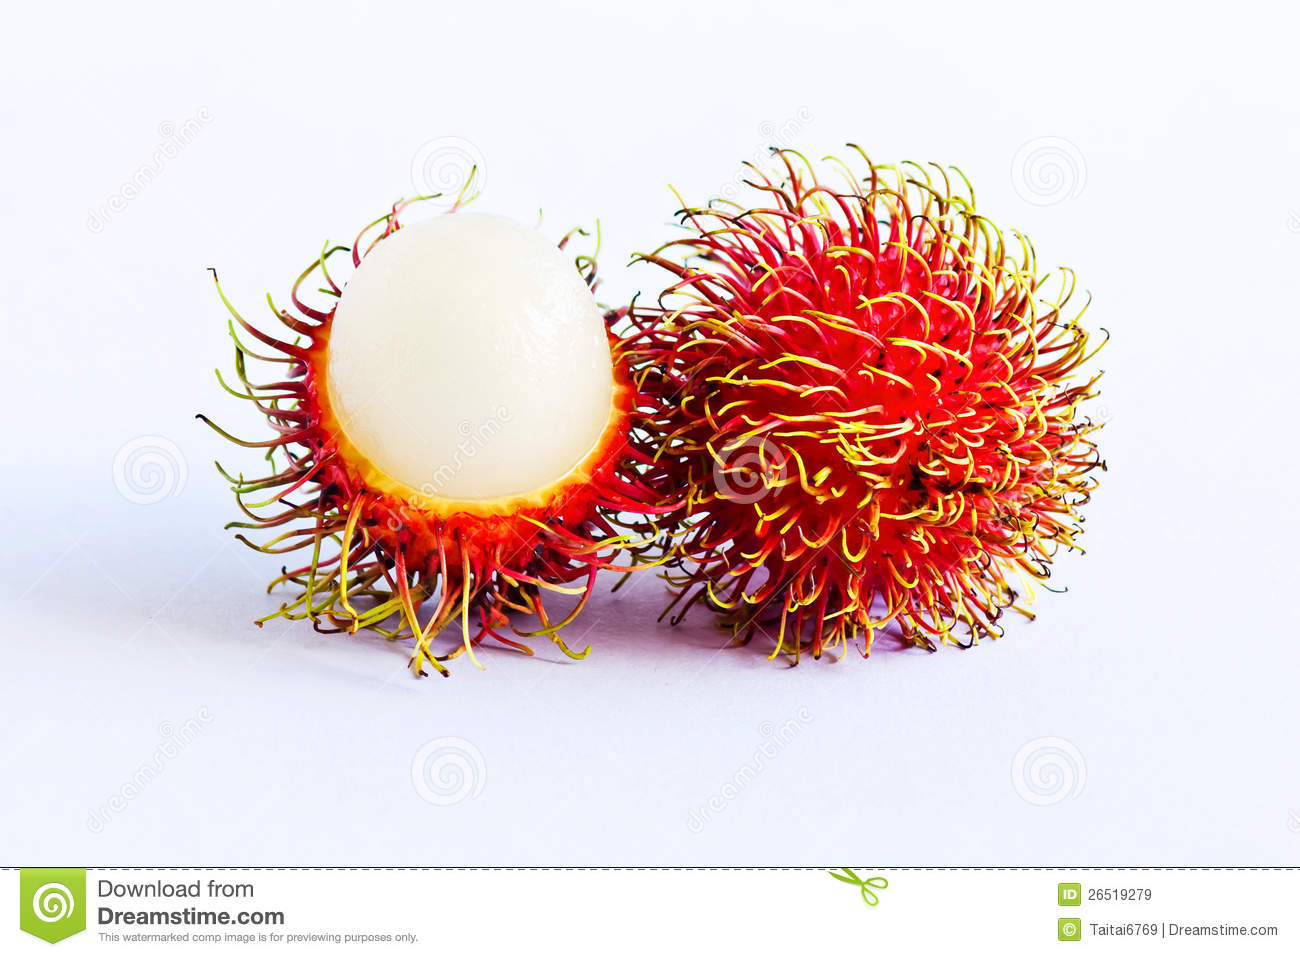 The Rambutan From Thailand Royalty Free Stock Images.